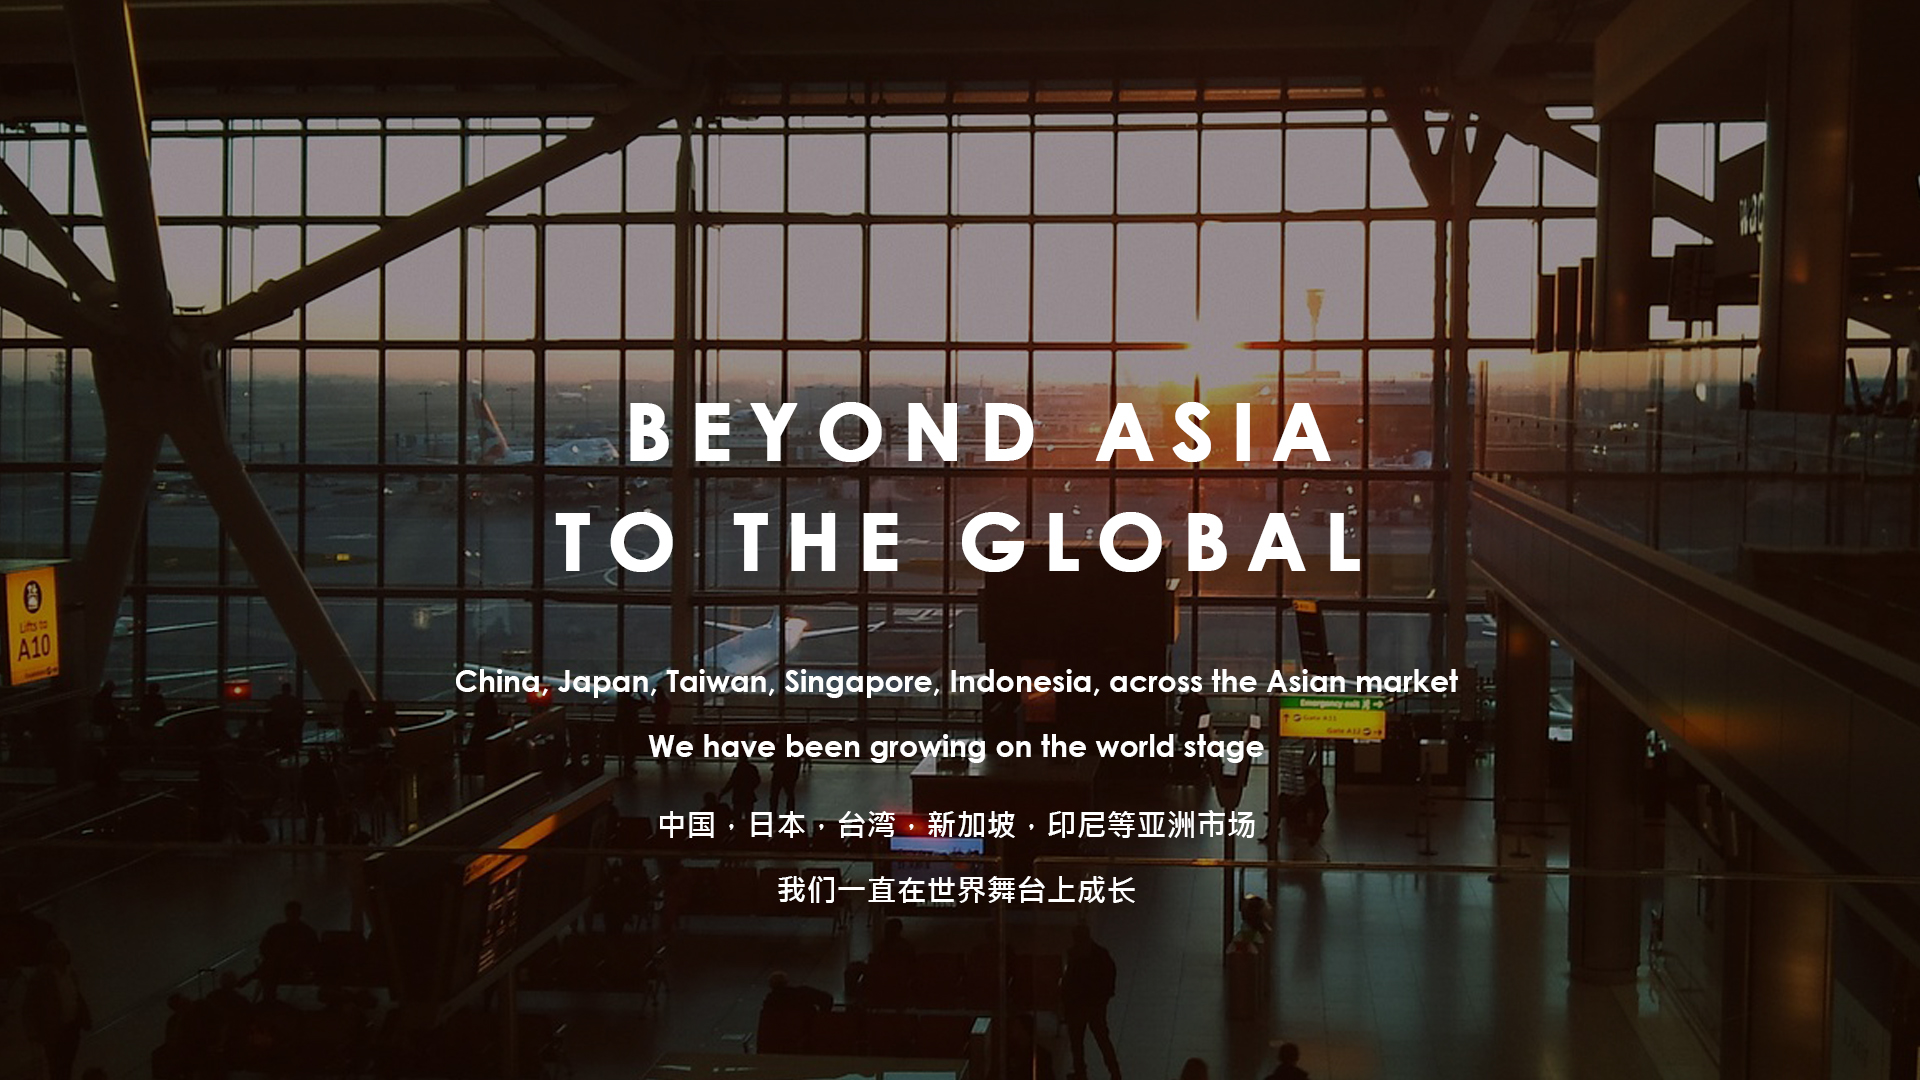 메인02_영중 BEYOND ASIA TO THE GLOBAL